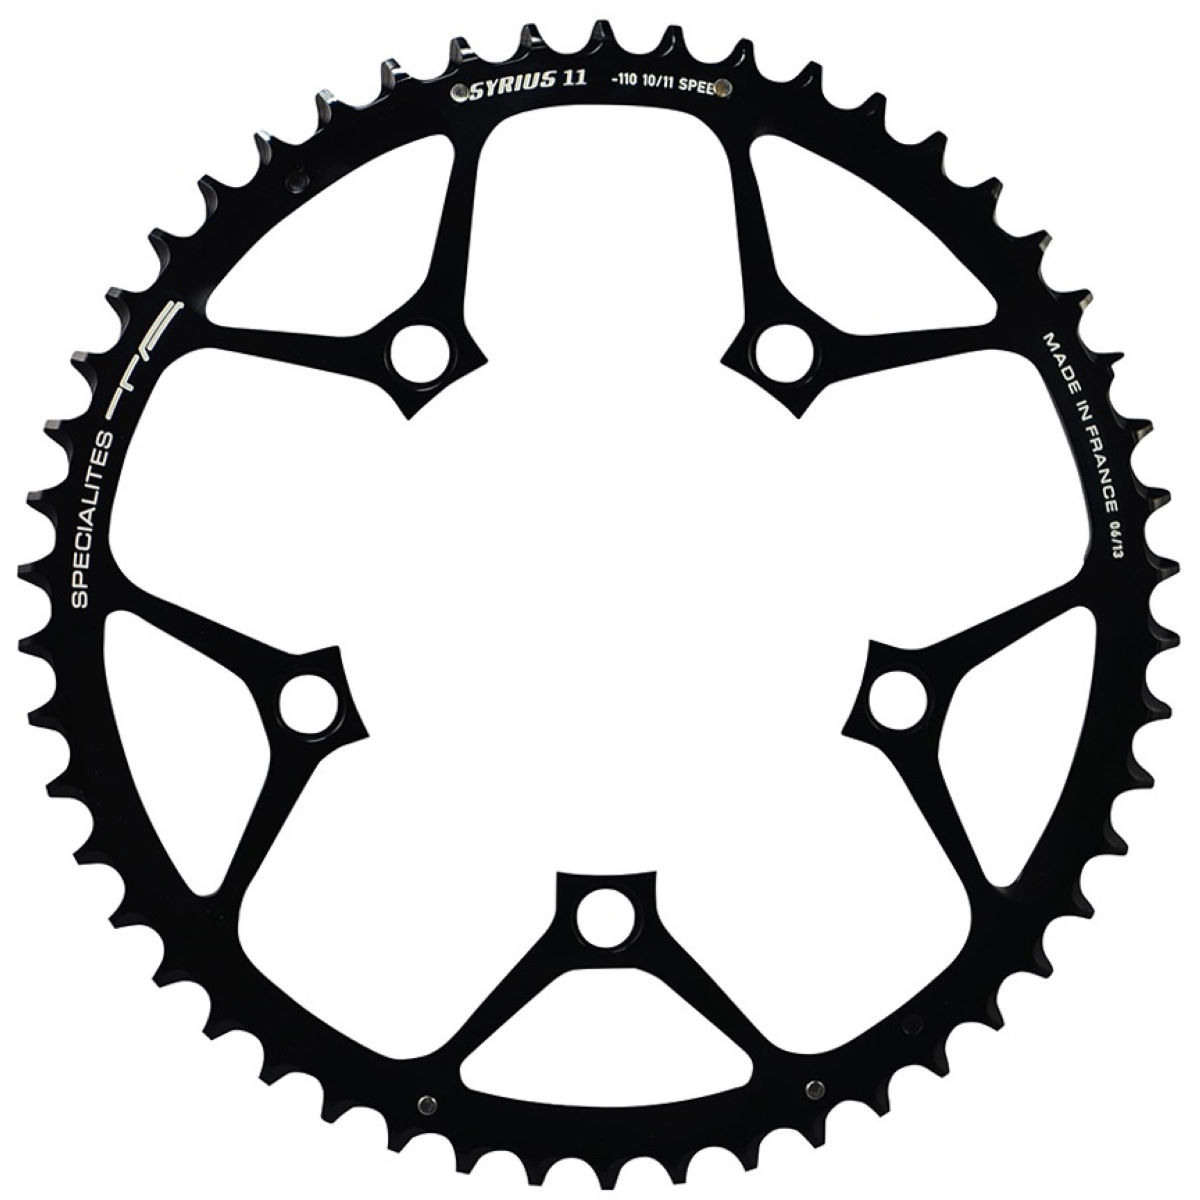 TA TA Syrius Chainring 10/11 Speed Chainring 110mm BCD   Chain Rings